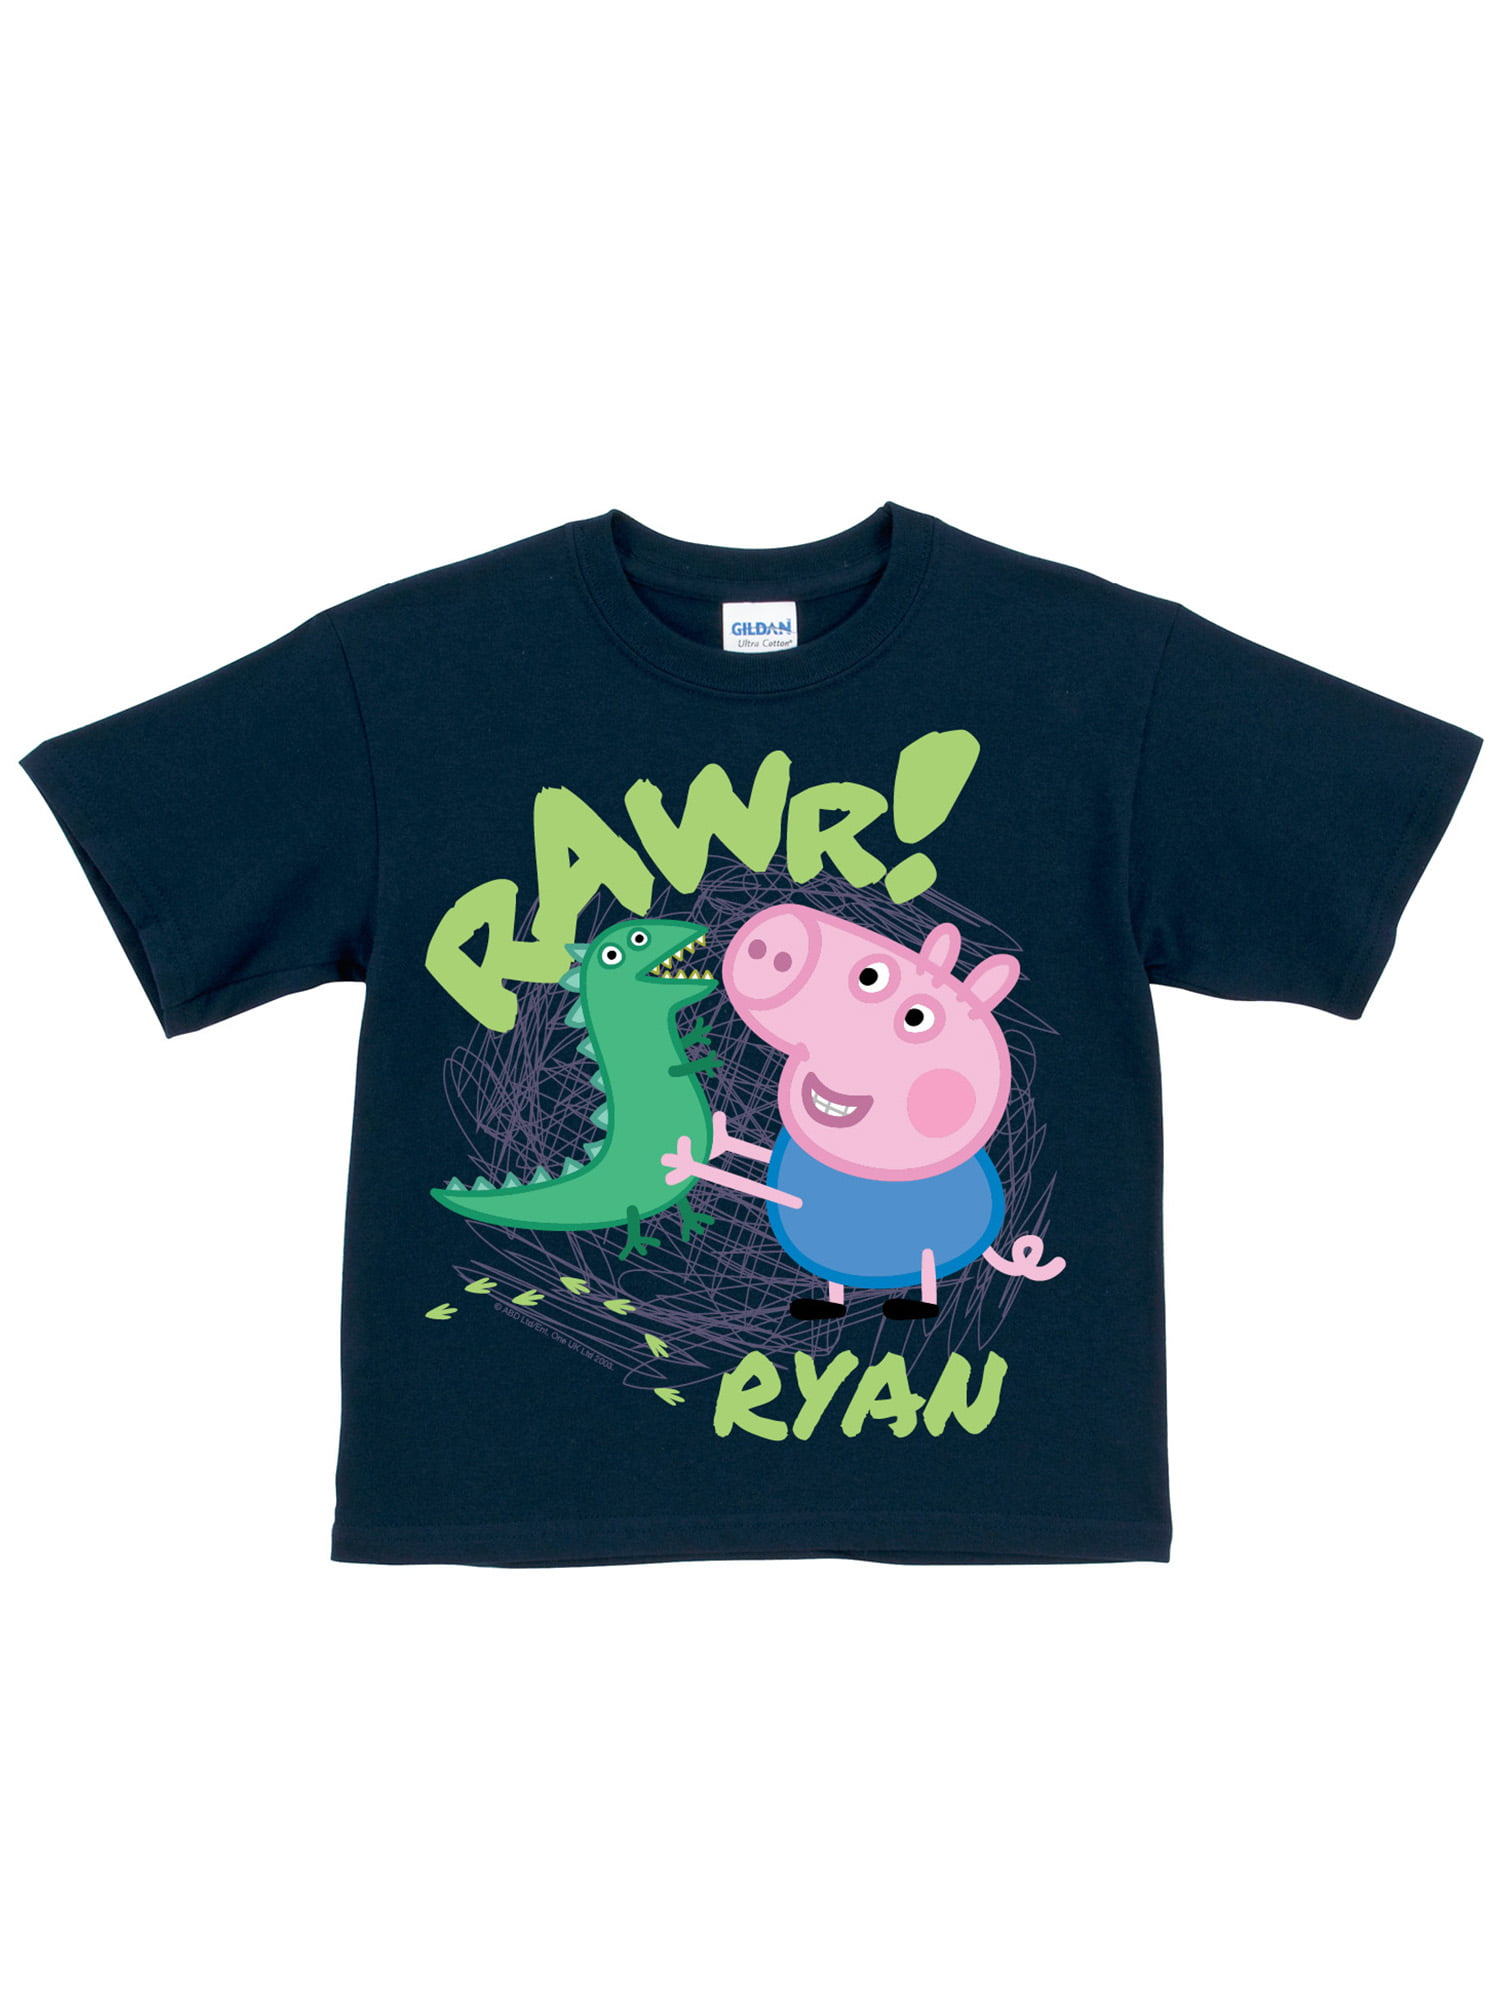 e101c0a69bc4d Personalized Peppa Pig George Rawr Navy Boys' T-Shirt